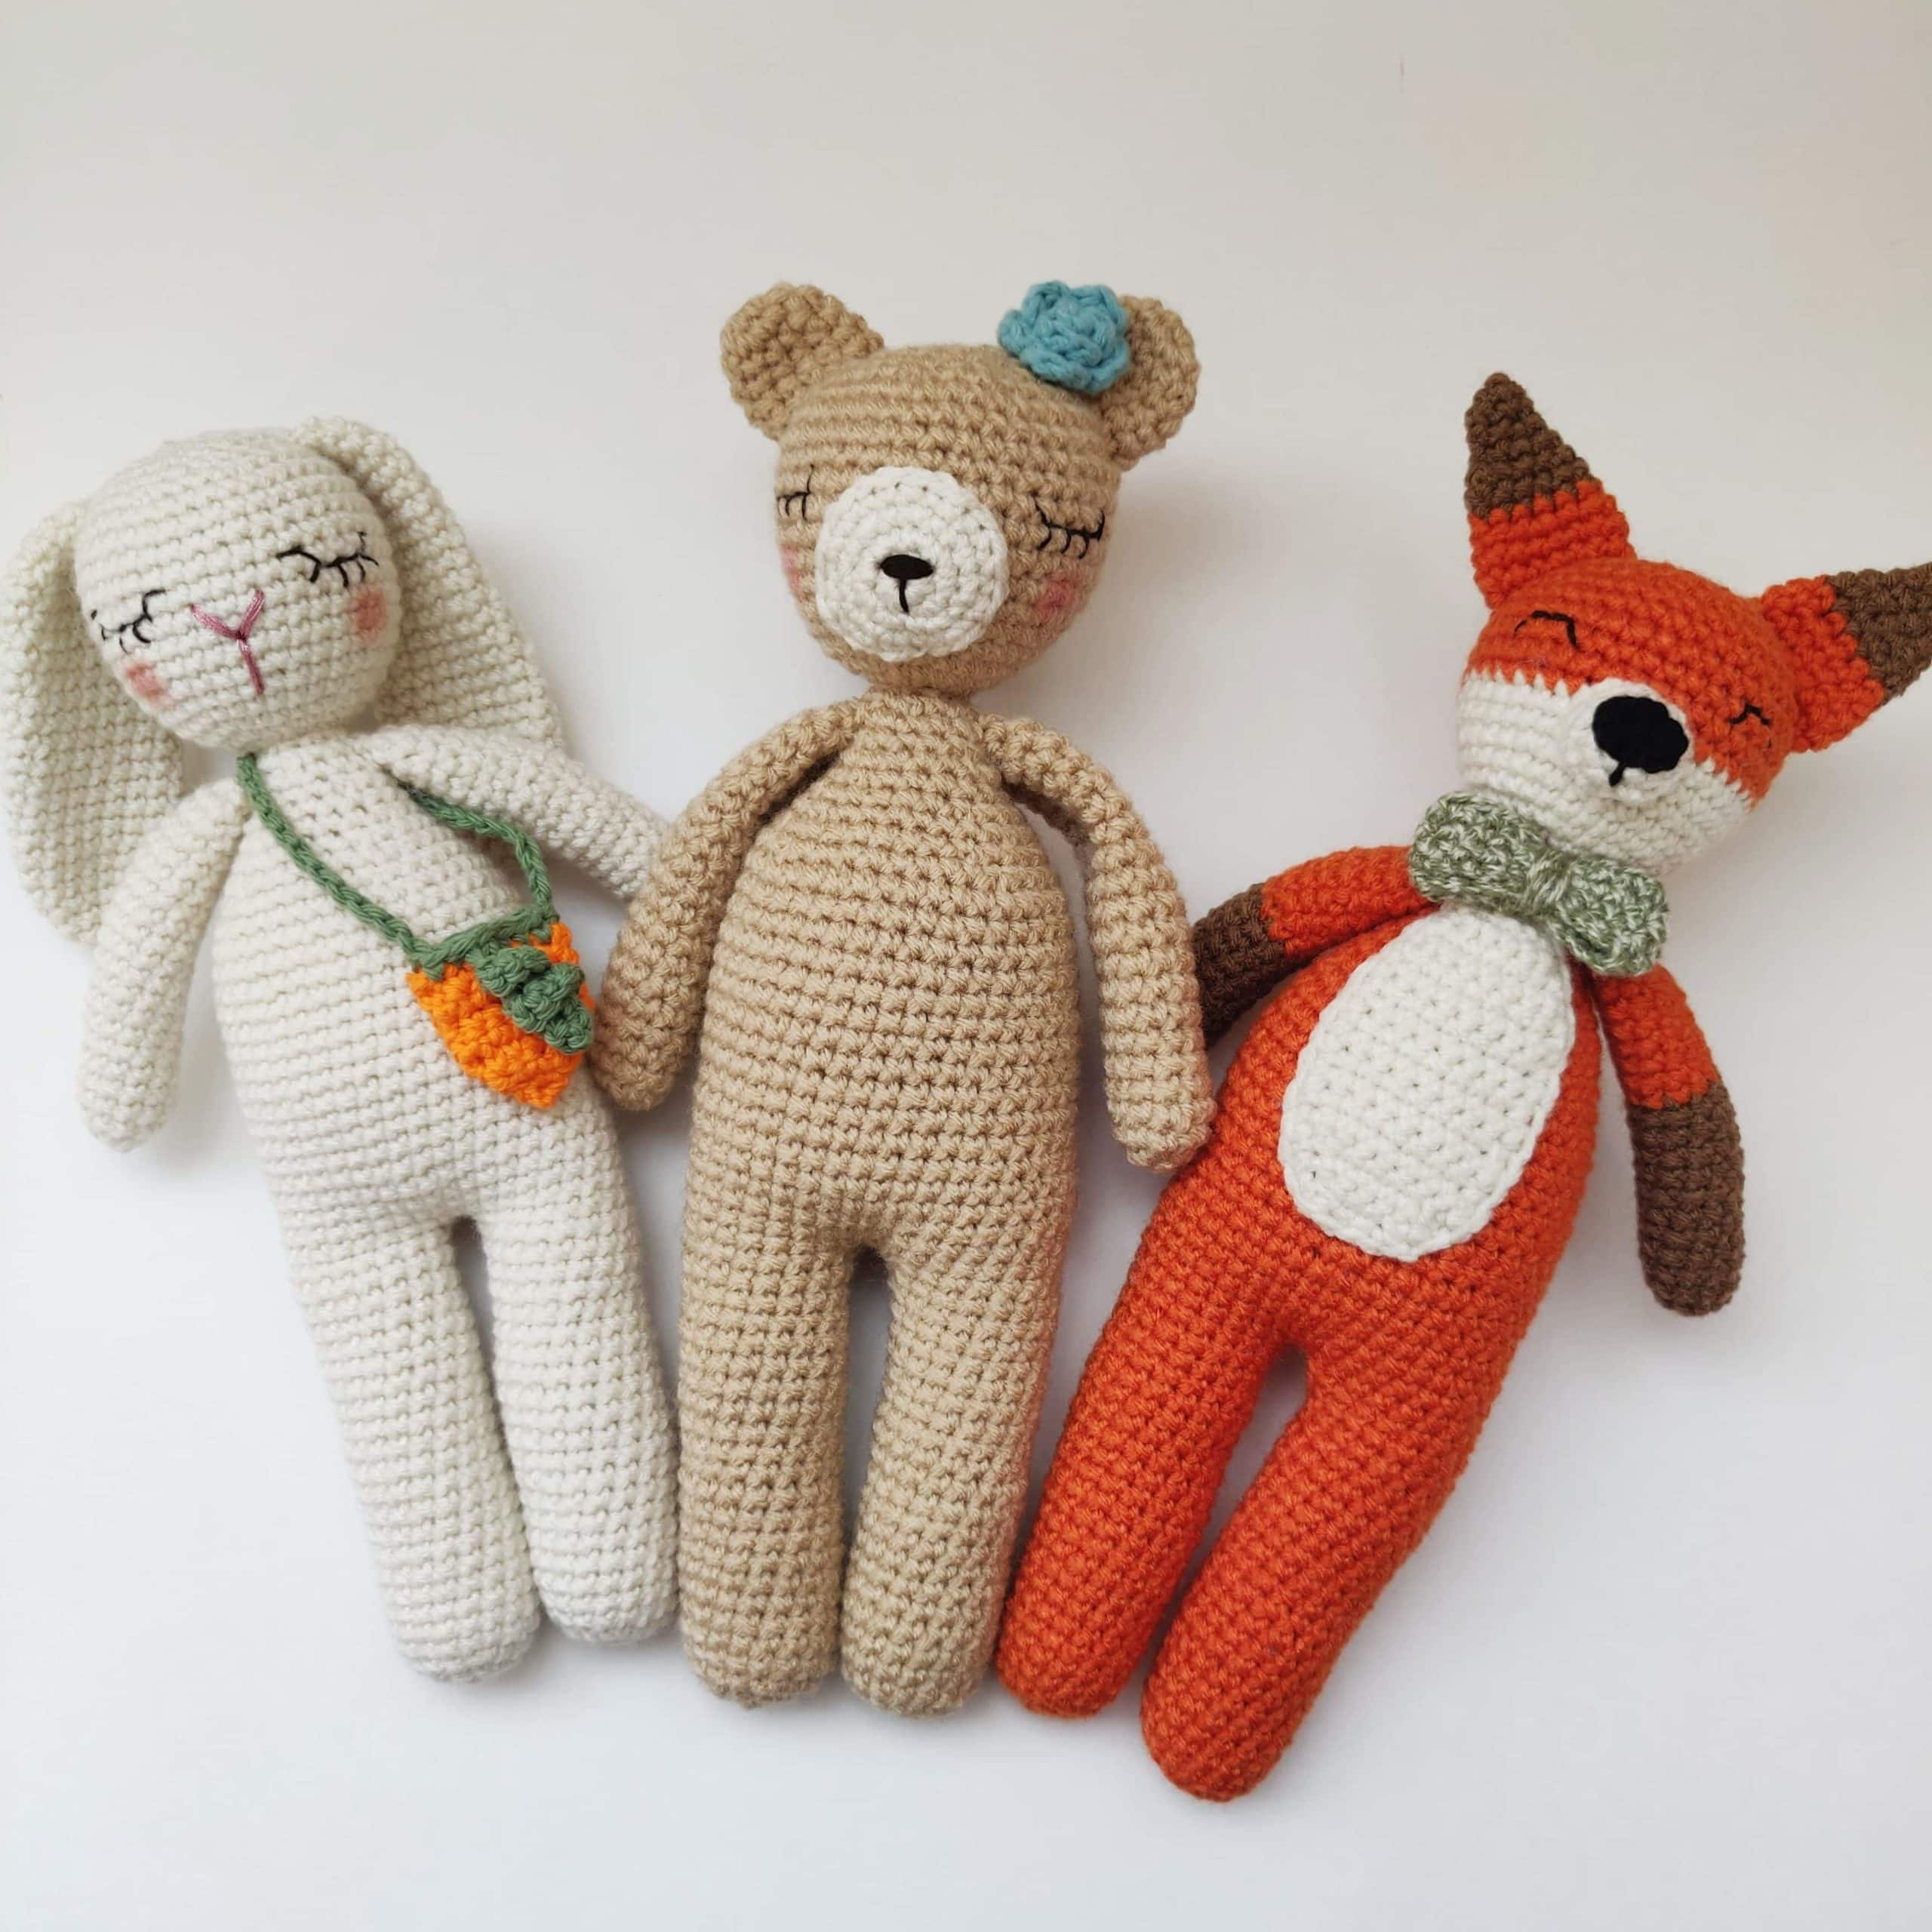 Crochet white rabbit, brown bear and red fox side by side.